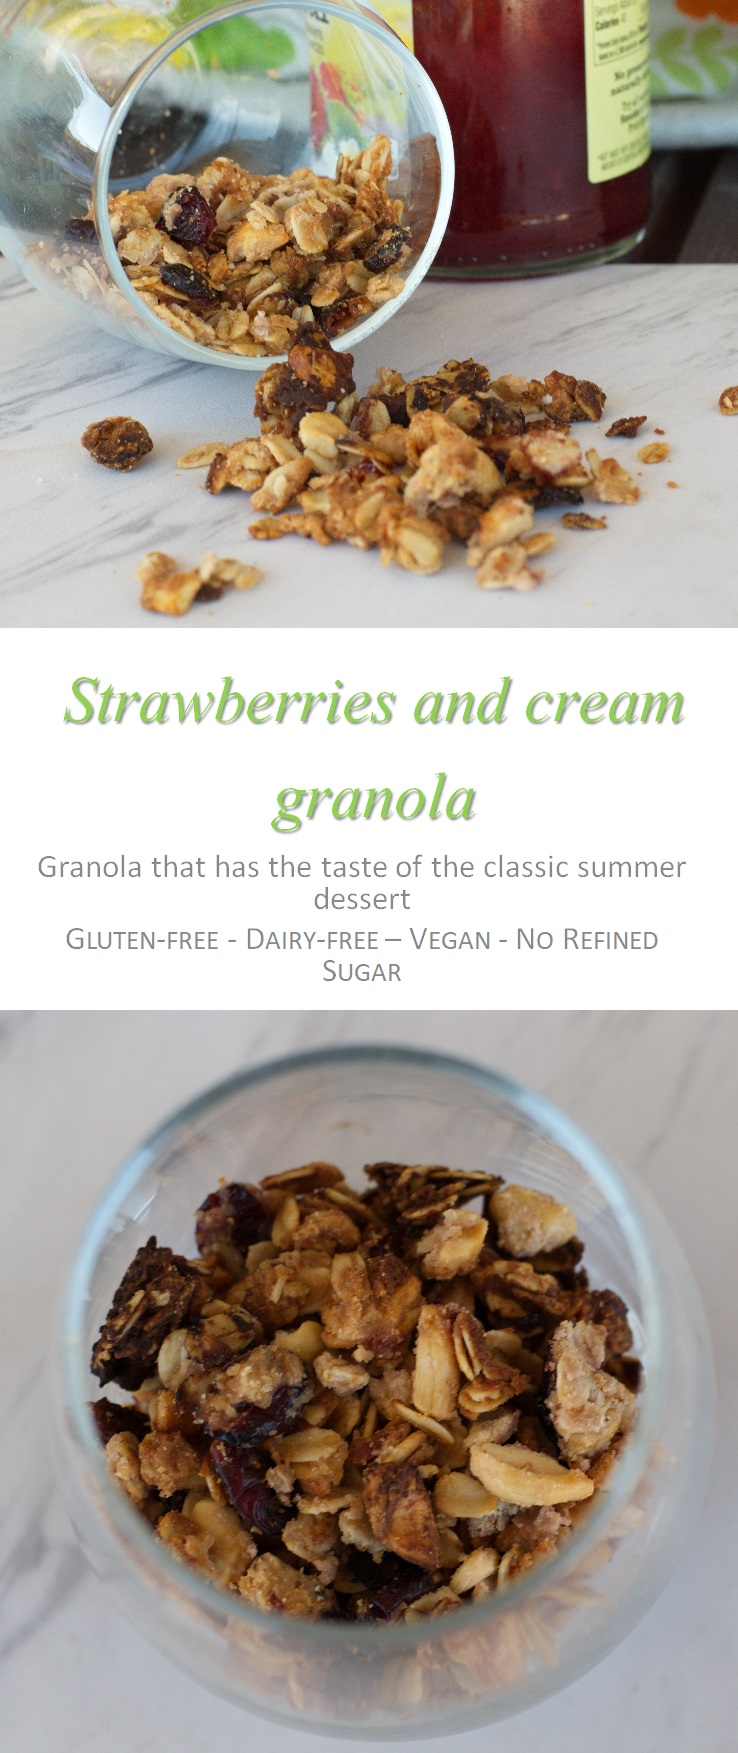 Who doesn't love strawberries and cream?  Check out this strawberries and cream granola and feel like you're having dessert for breakfast! #granola #strawberriesandcream #cookathome #glutenfree #dairyfree